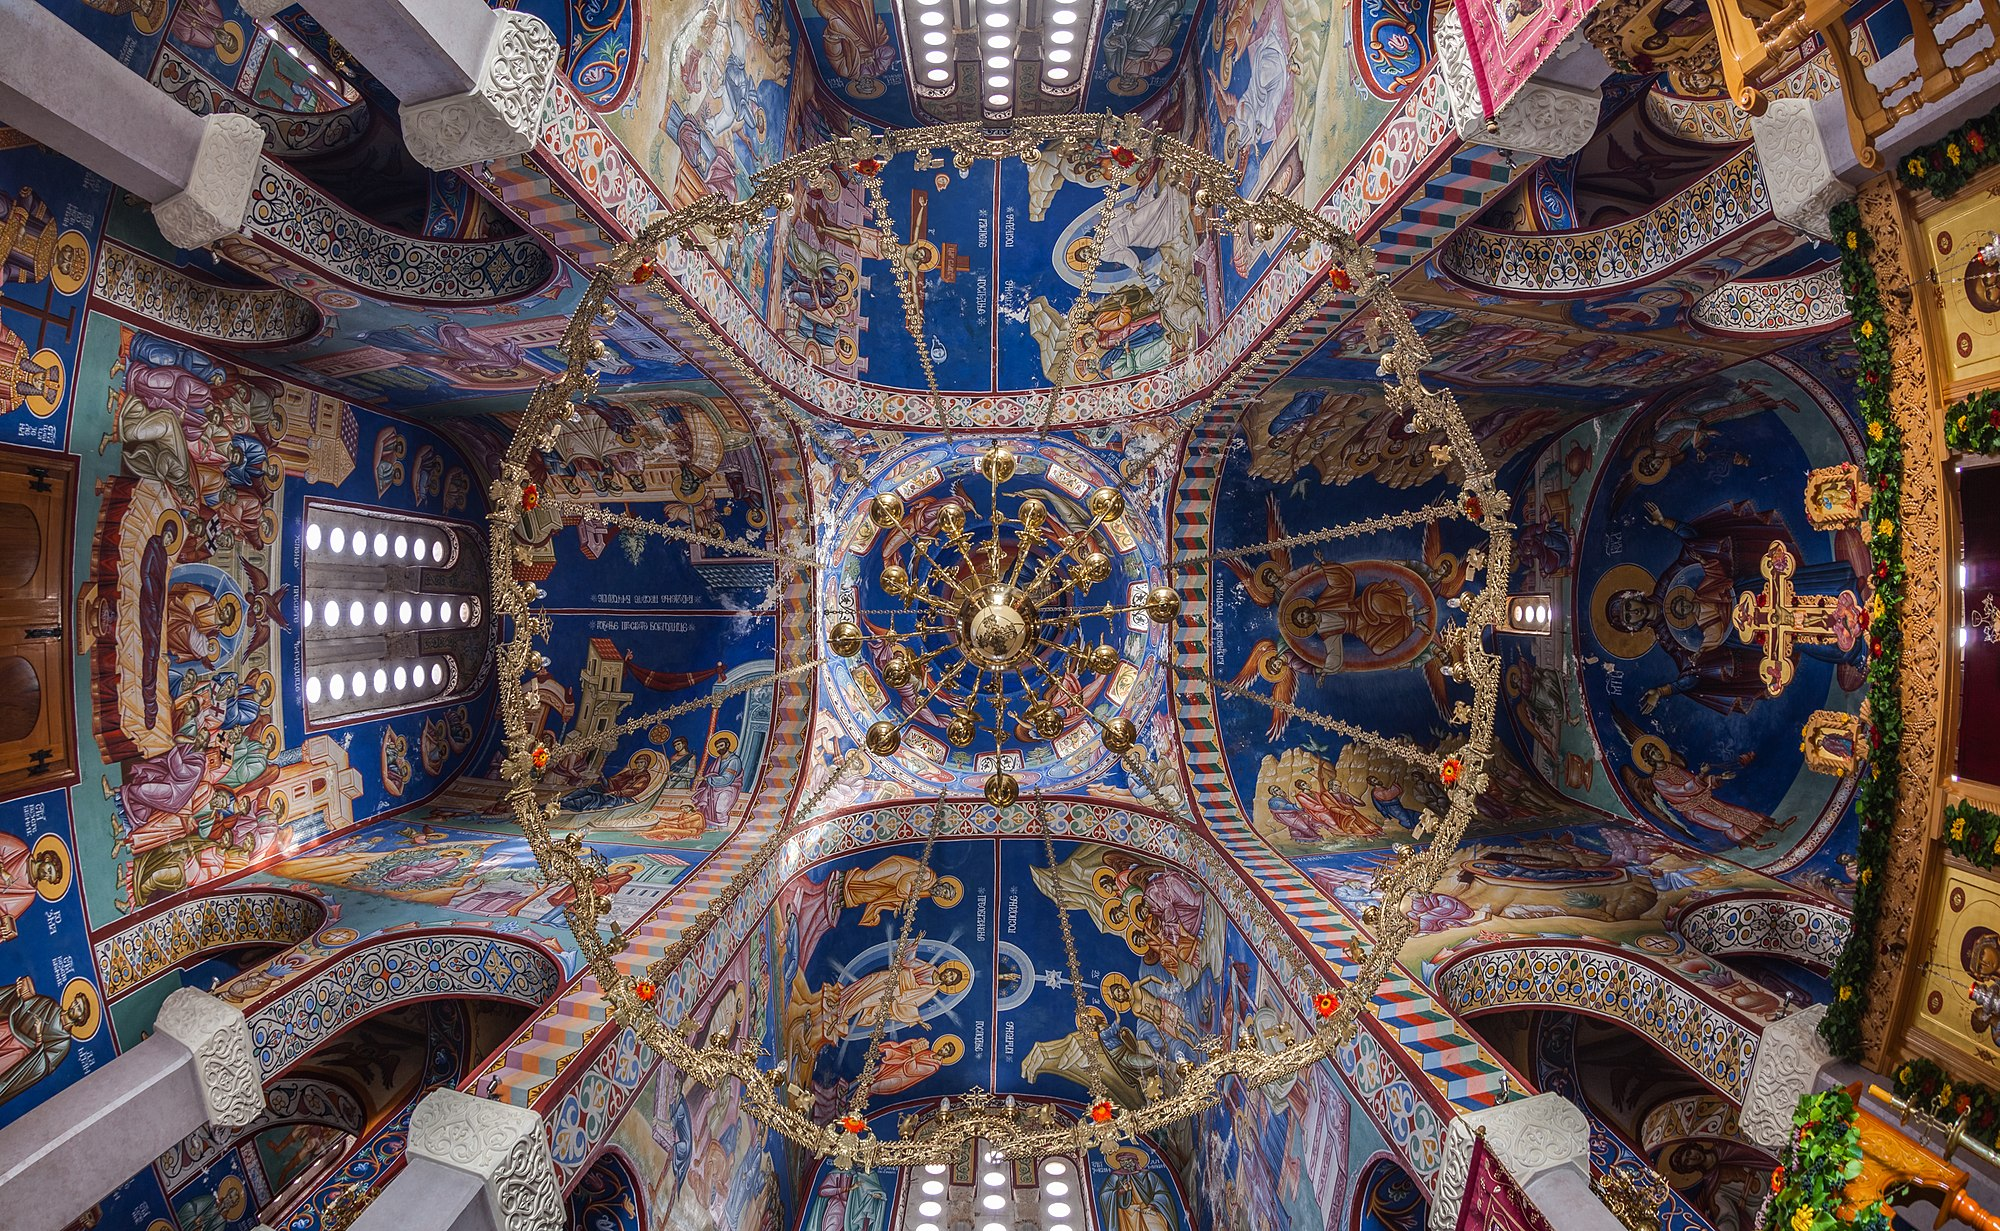 Interior of the Serbian Orthodox Hercegovačka Gračanica church, Trebinje, Republika Srpska, Bosnia and Herzegovina.